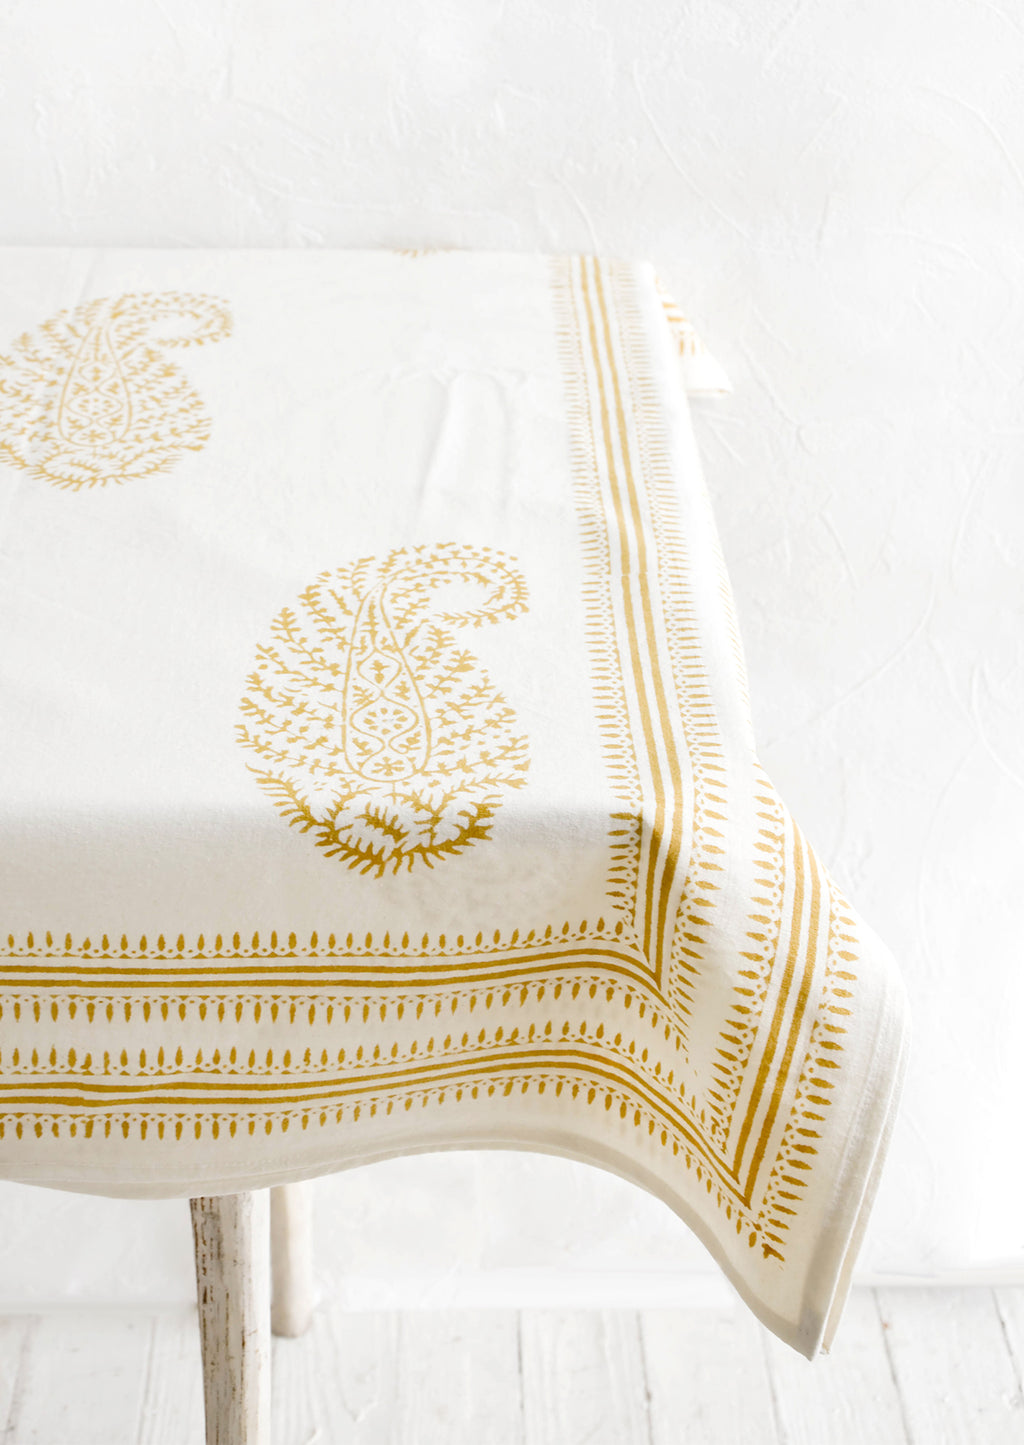 3: Fielden Paisley Tablecloth